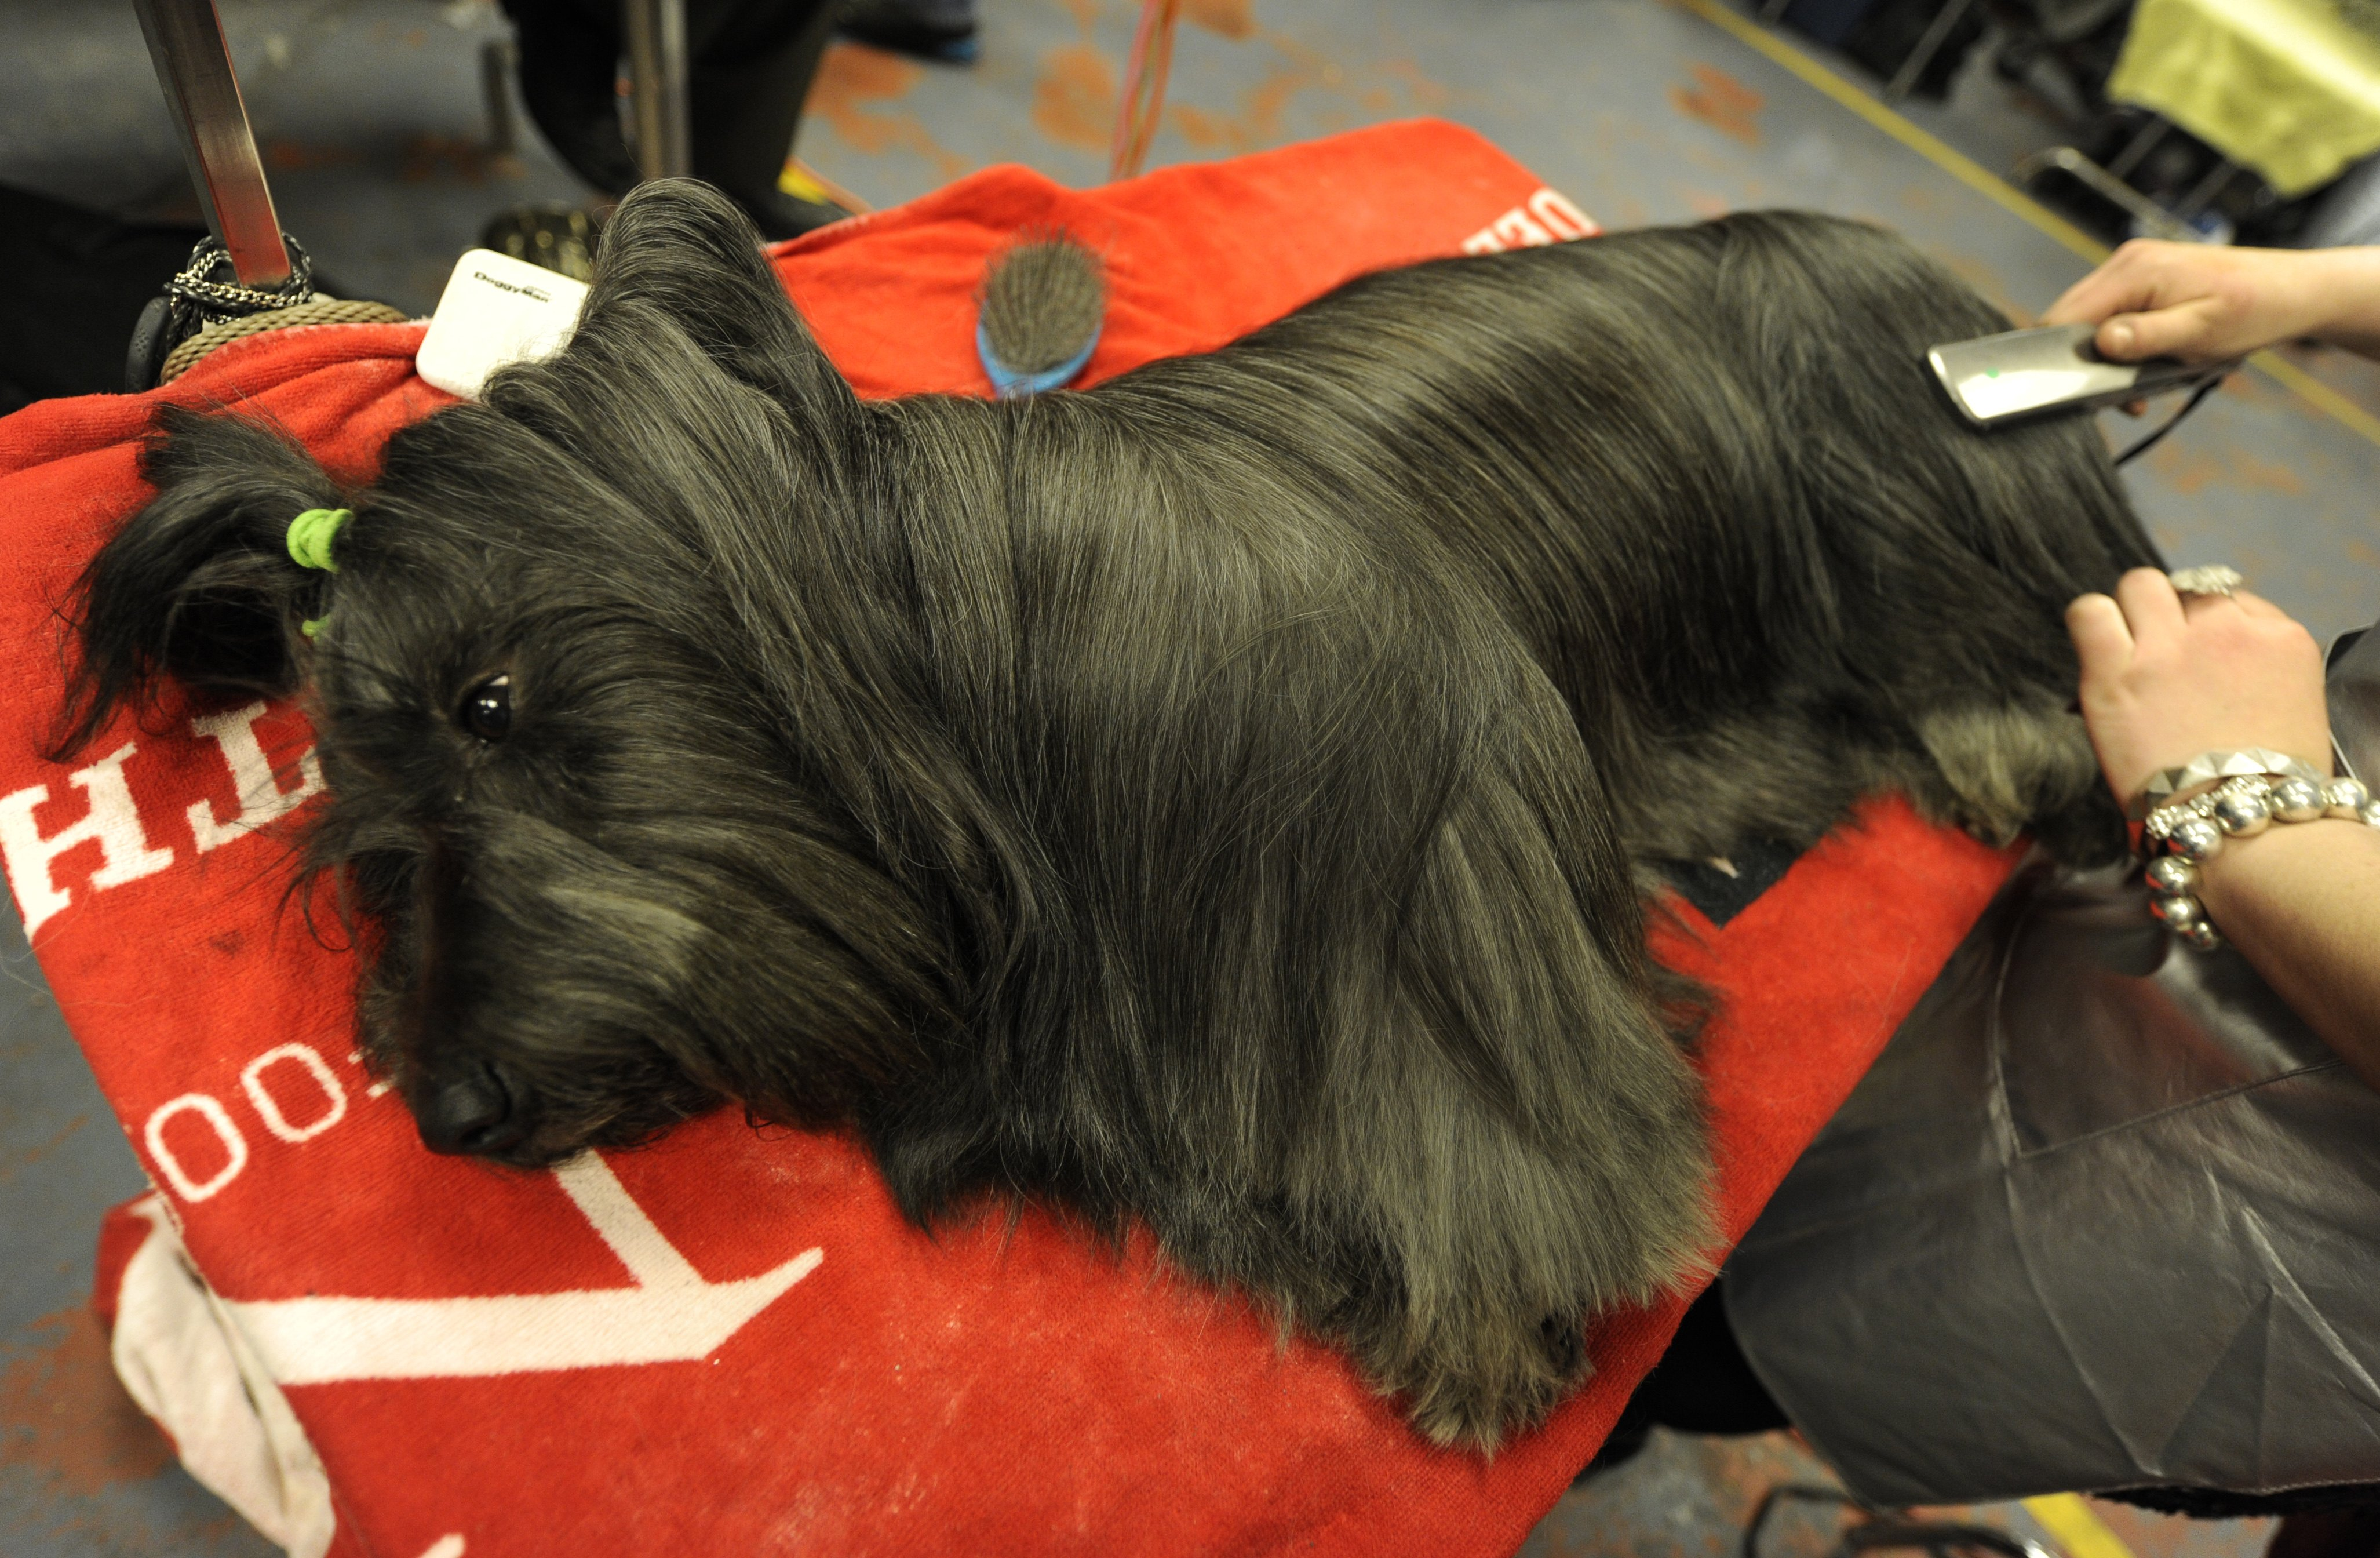 Dillon, the Sealyham Terrier, enjoys the grooming session.